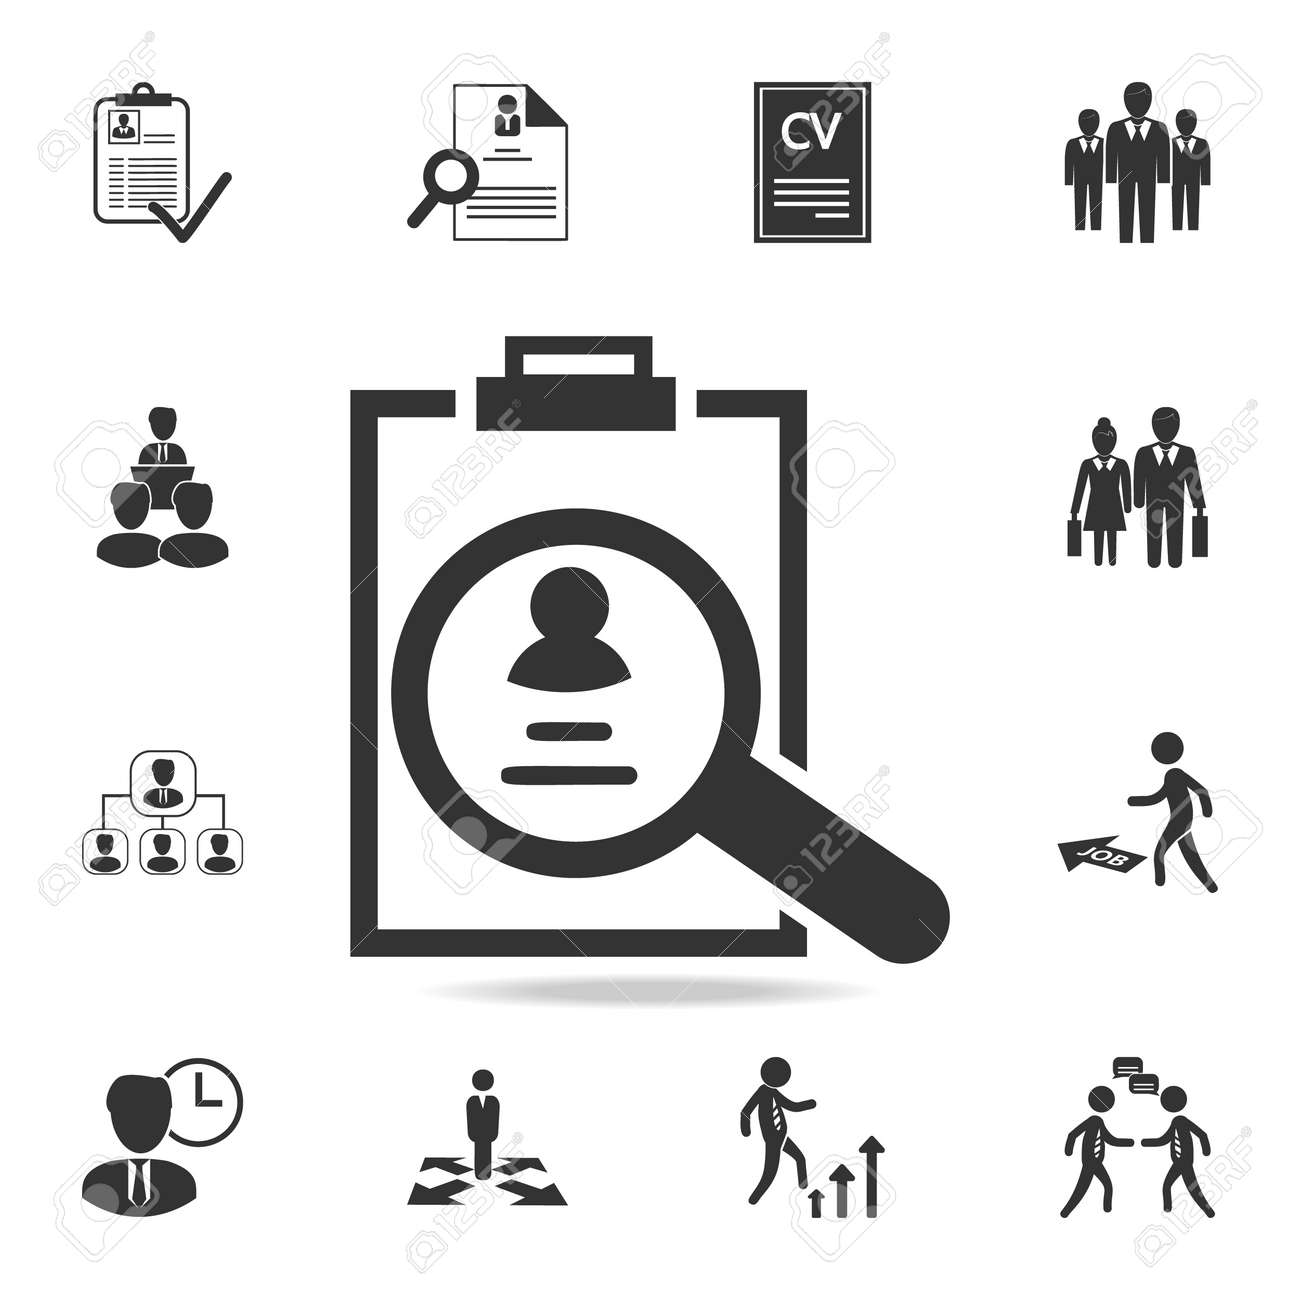 Curriculum Vitae Review Icon Set Of Human Resources Head Hunting